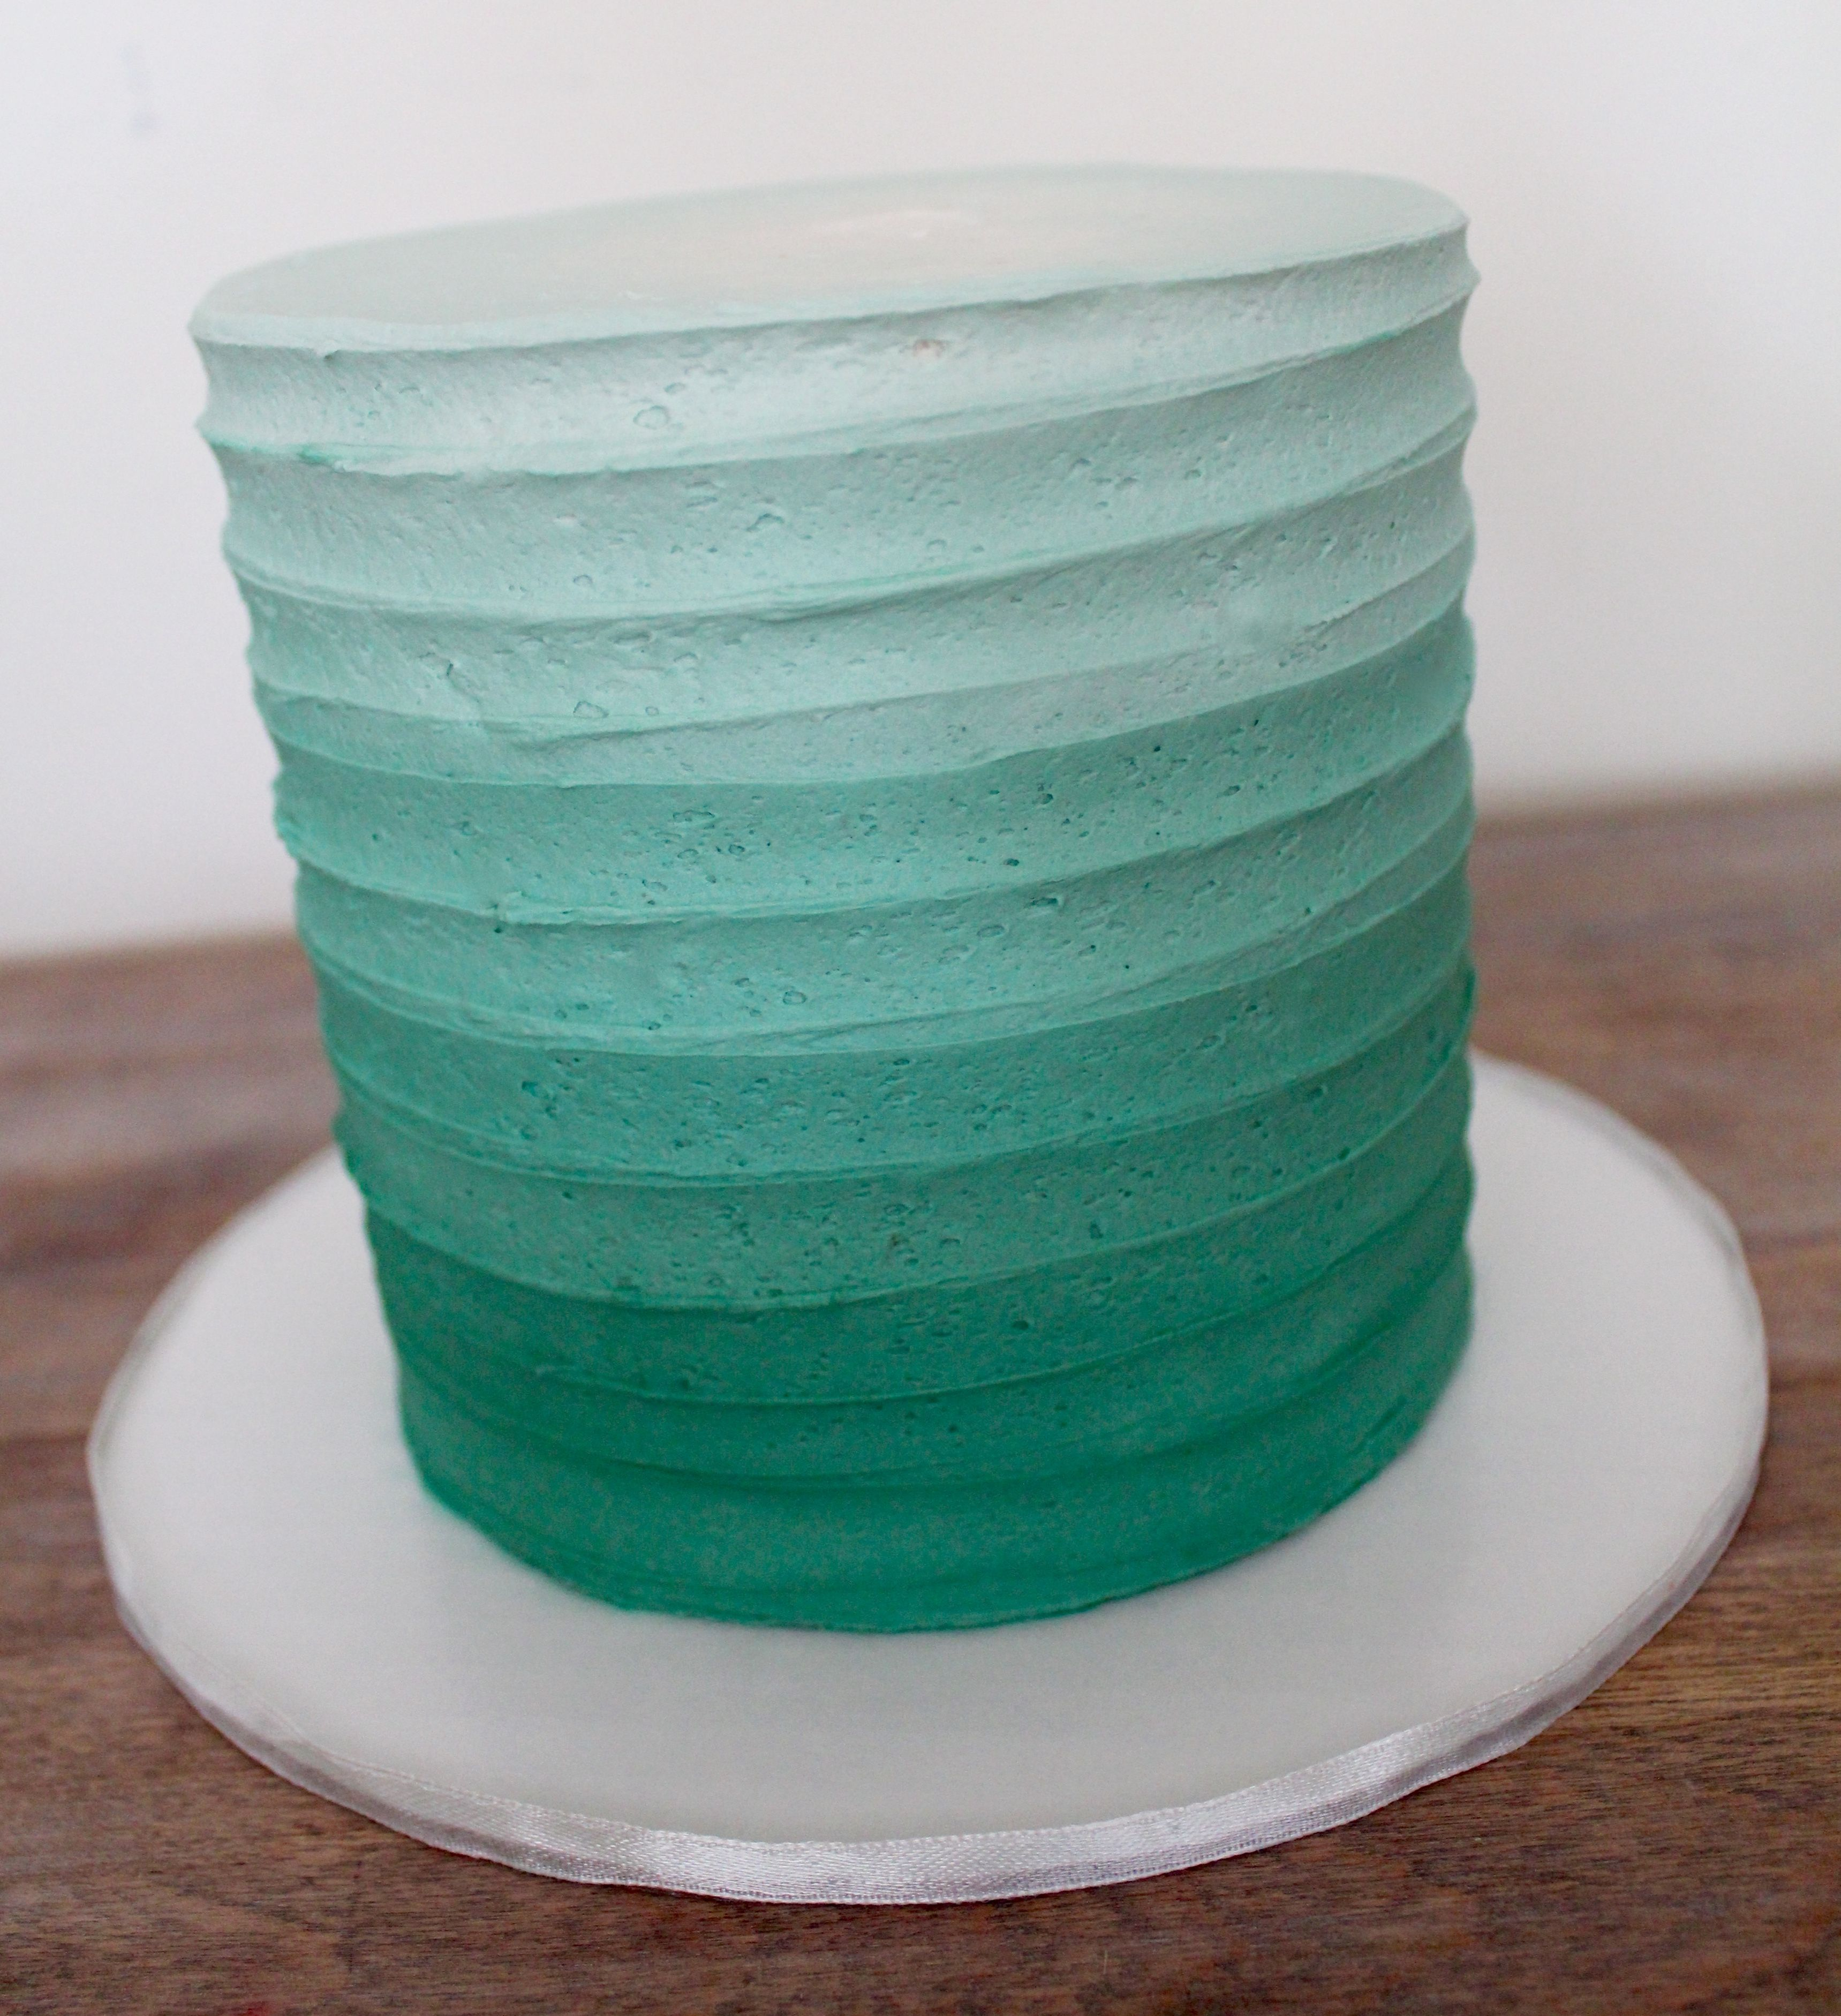 Line Texture Cake : Ombre line textured buttercream cake mint teal green